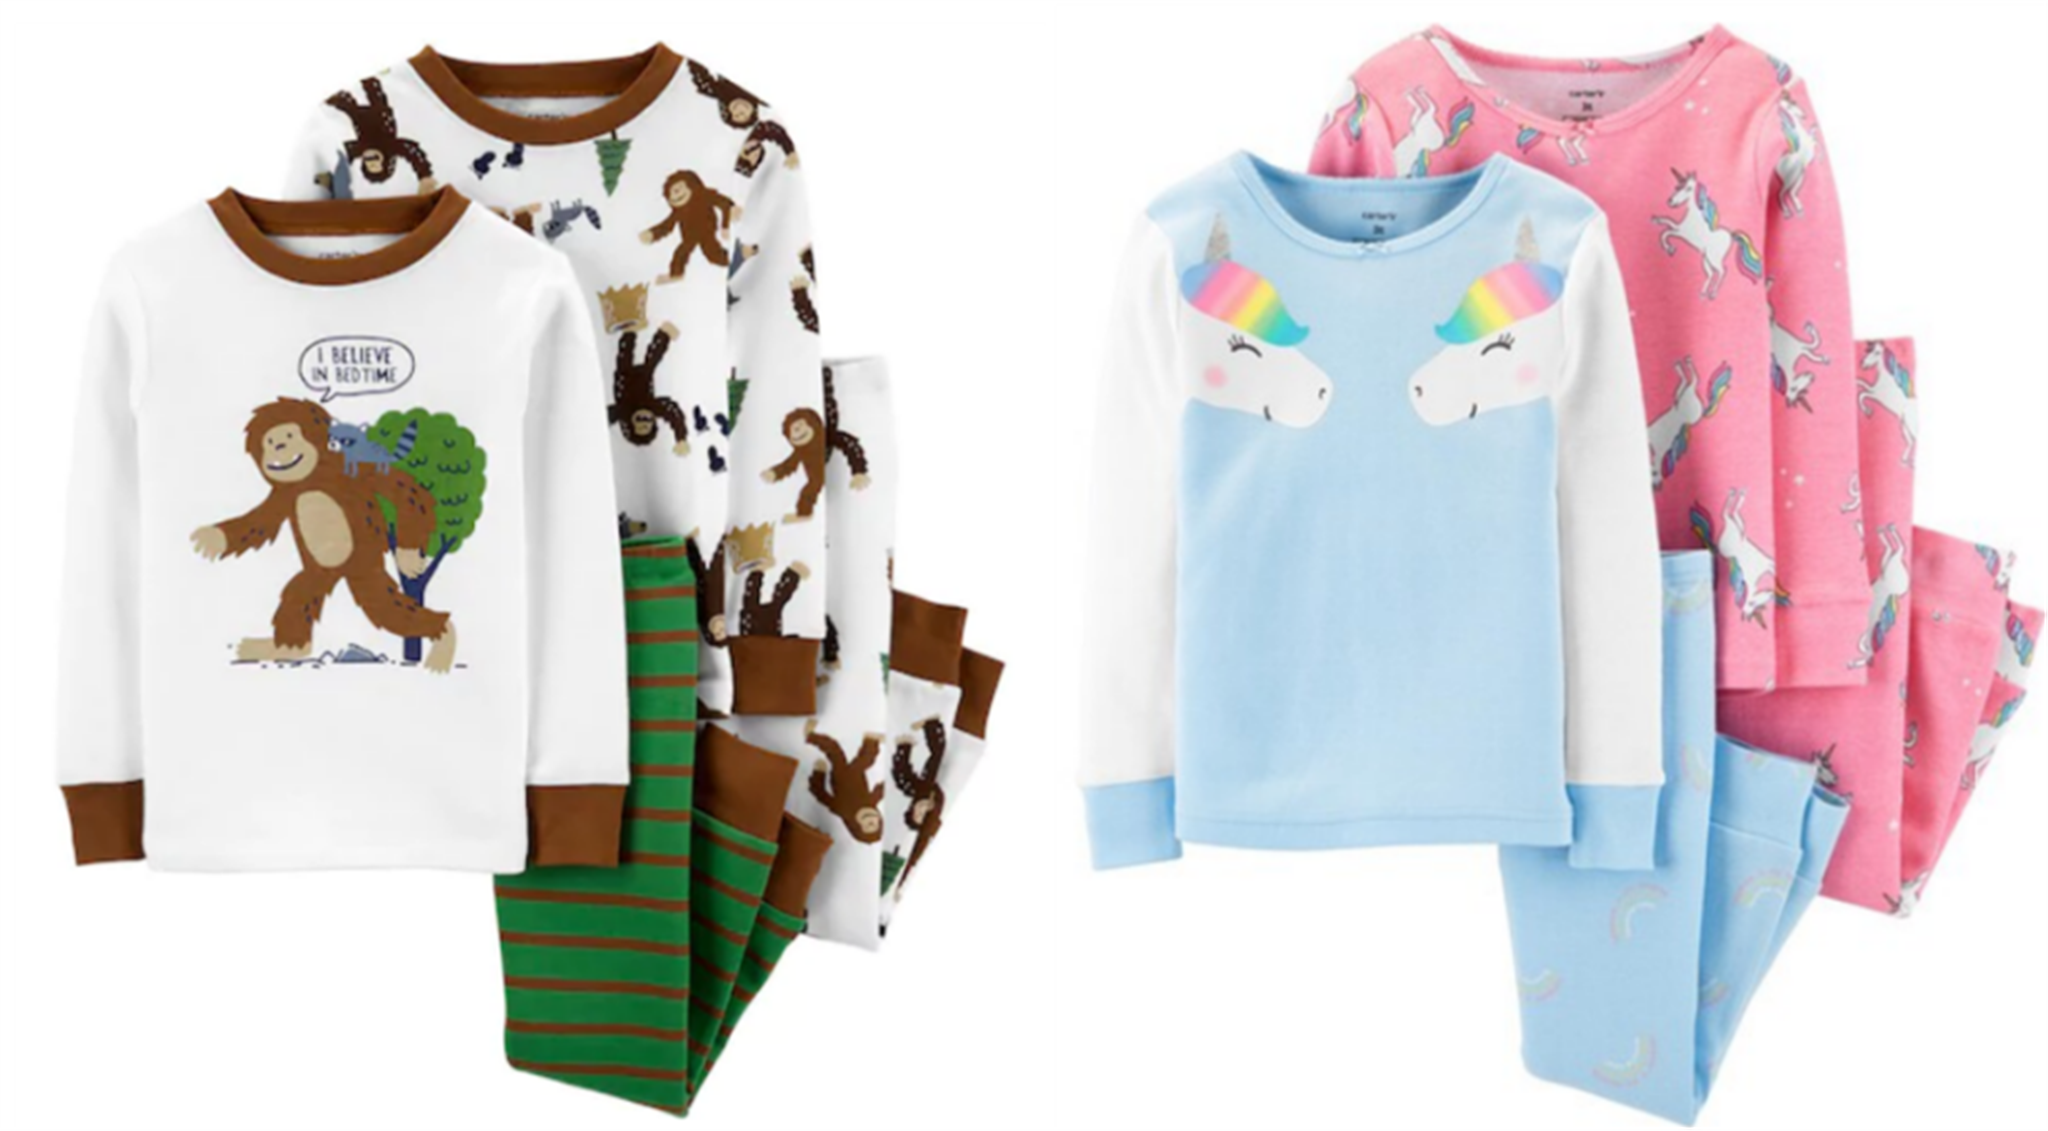 Kohl's Cardholders – Carter's 4 Piece Pajama Sets Only $8.33, Reg $36.00 + Free Shipping!